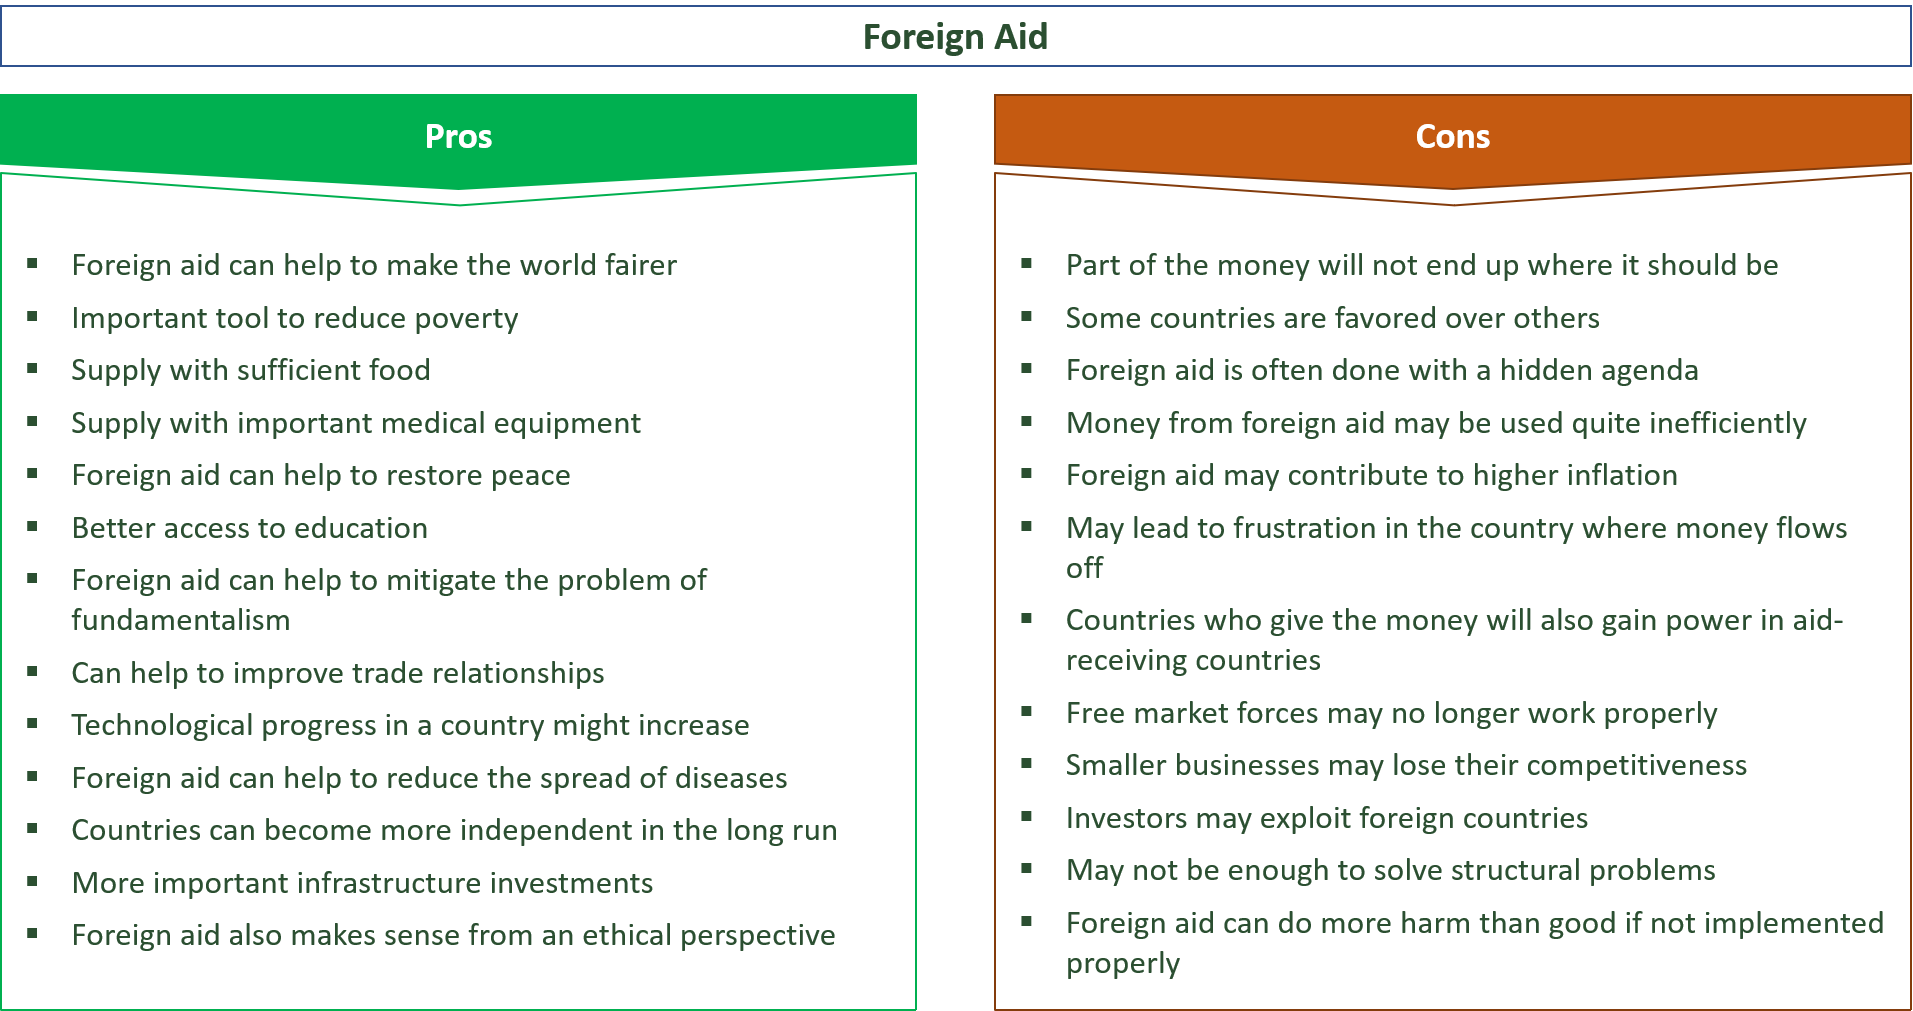 advantages and disadvantages of foreign aid